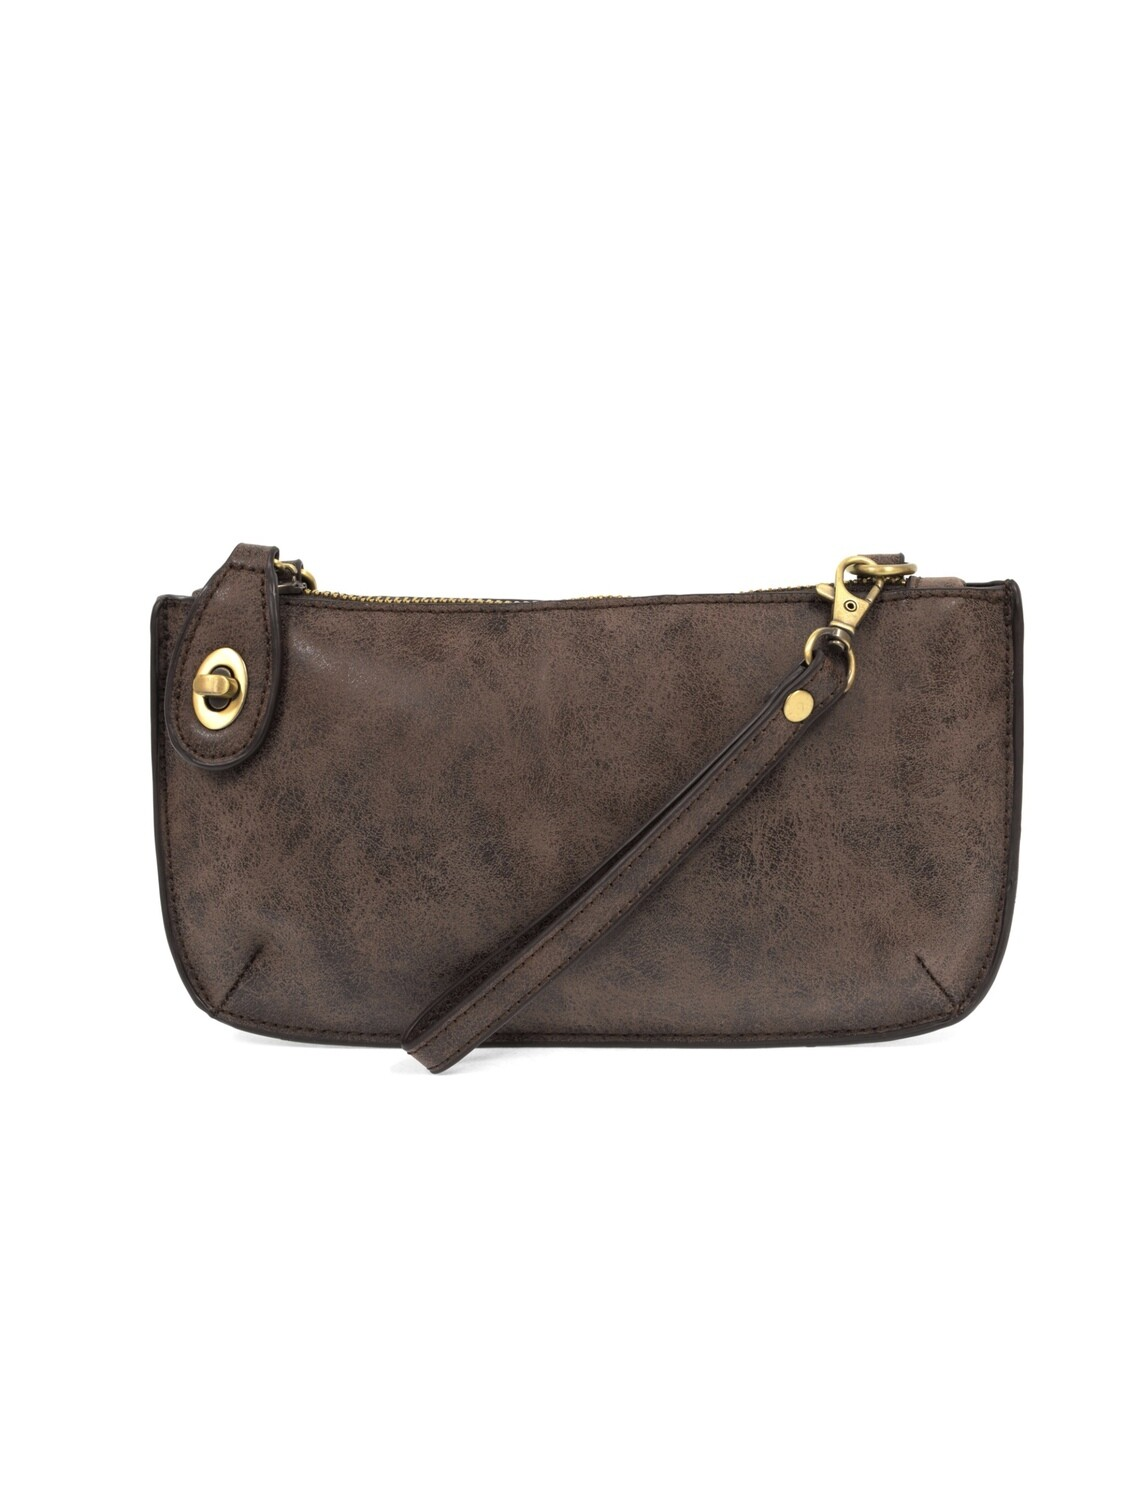 Lux Crossbody Wristlet Clutch Chocolate JA8020-63